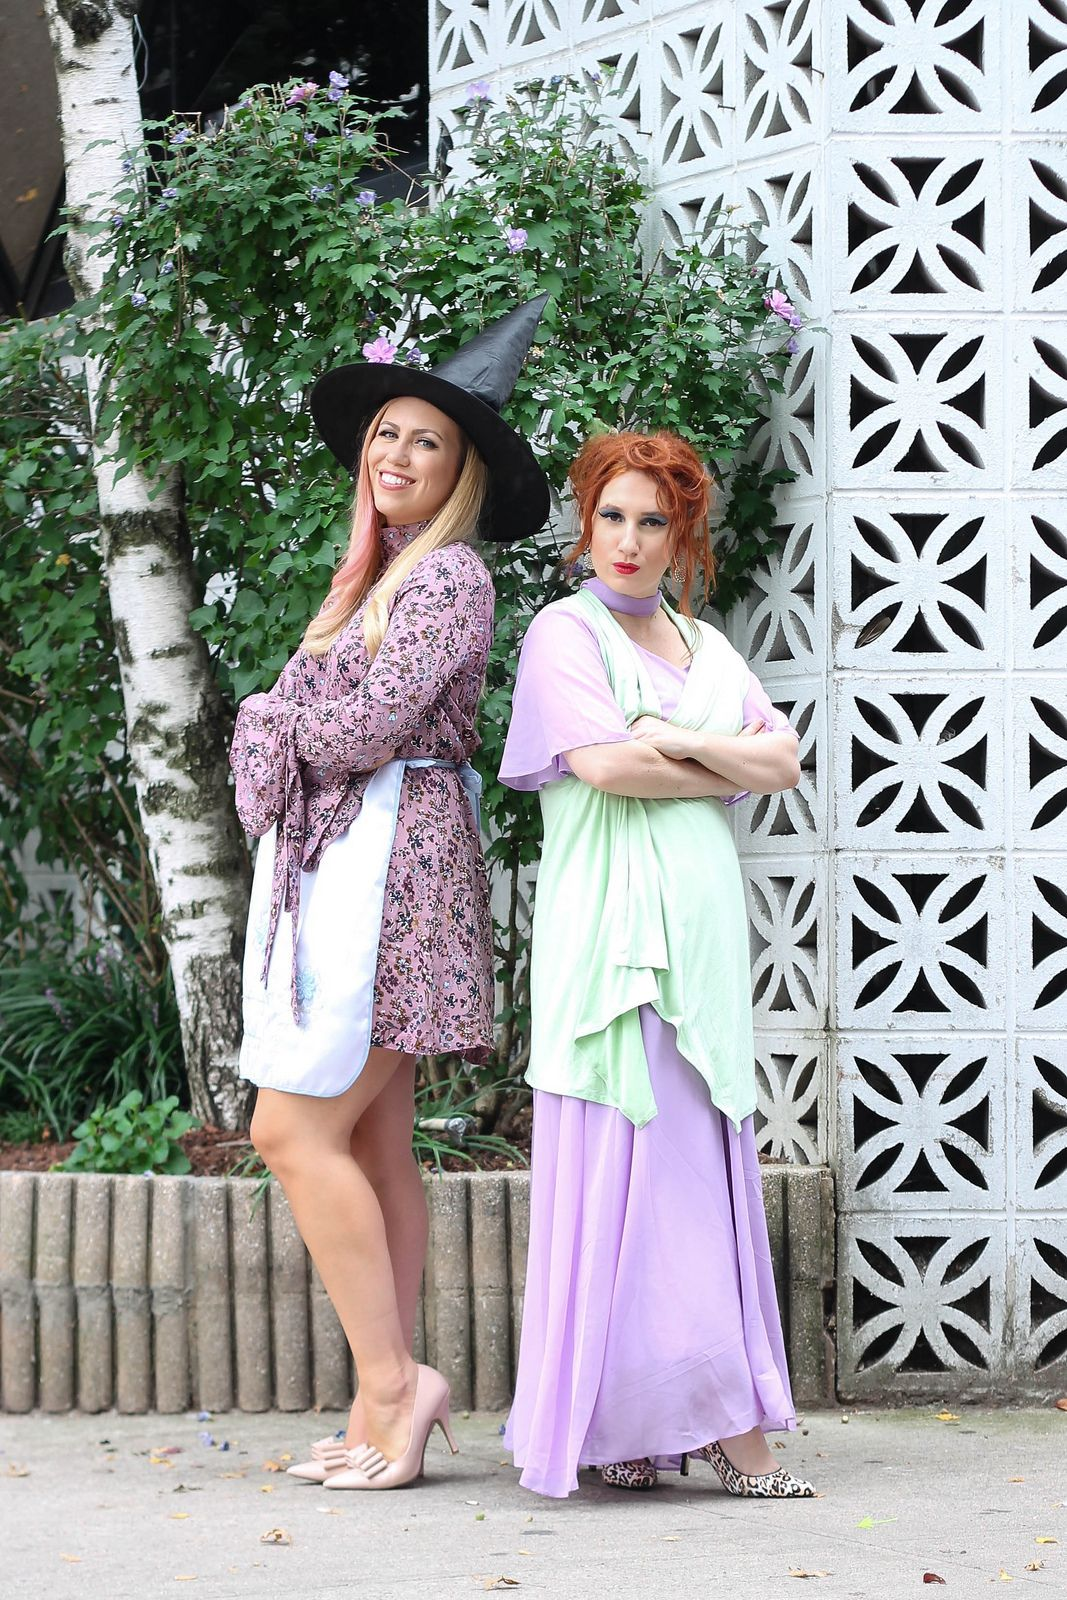 Throwback 60s Halloween Costume Ideas Bewitched TV Series Mother Daughter Modest Costumes  sc 1 st  Pinterest & 4 Affordable Halloween Costumes for You u0026 Your Best Friend | 60s ...